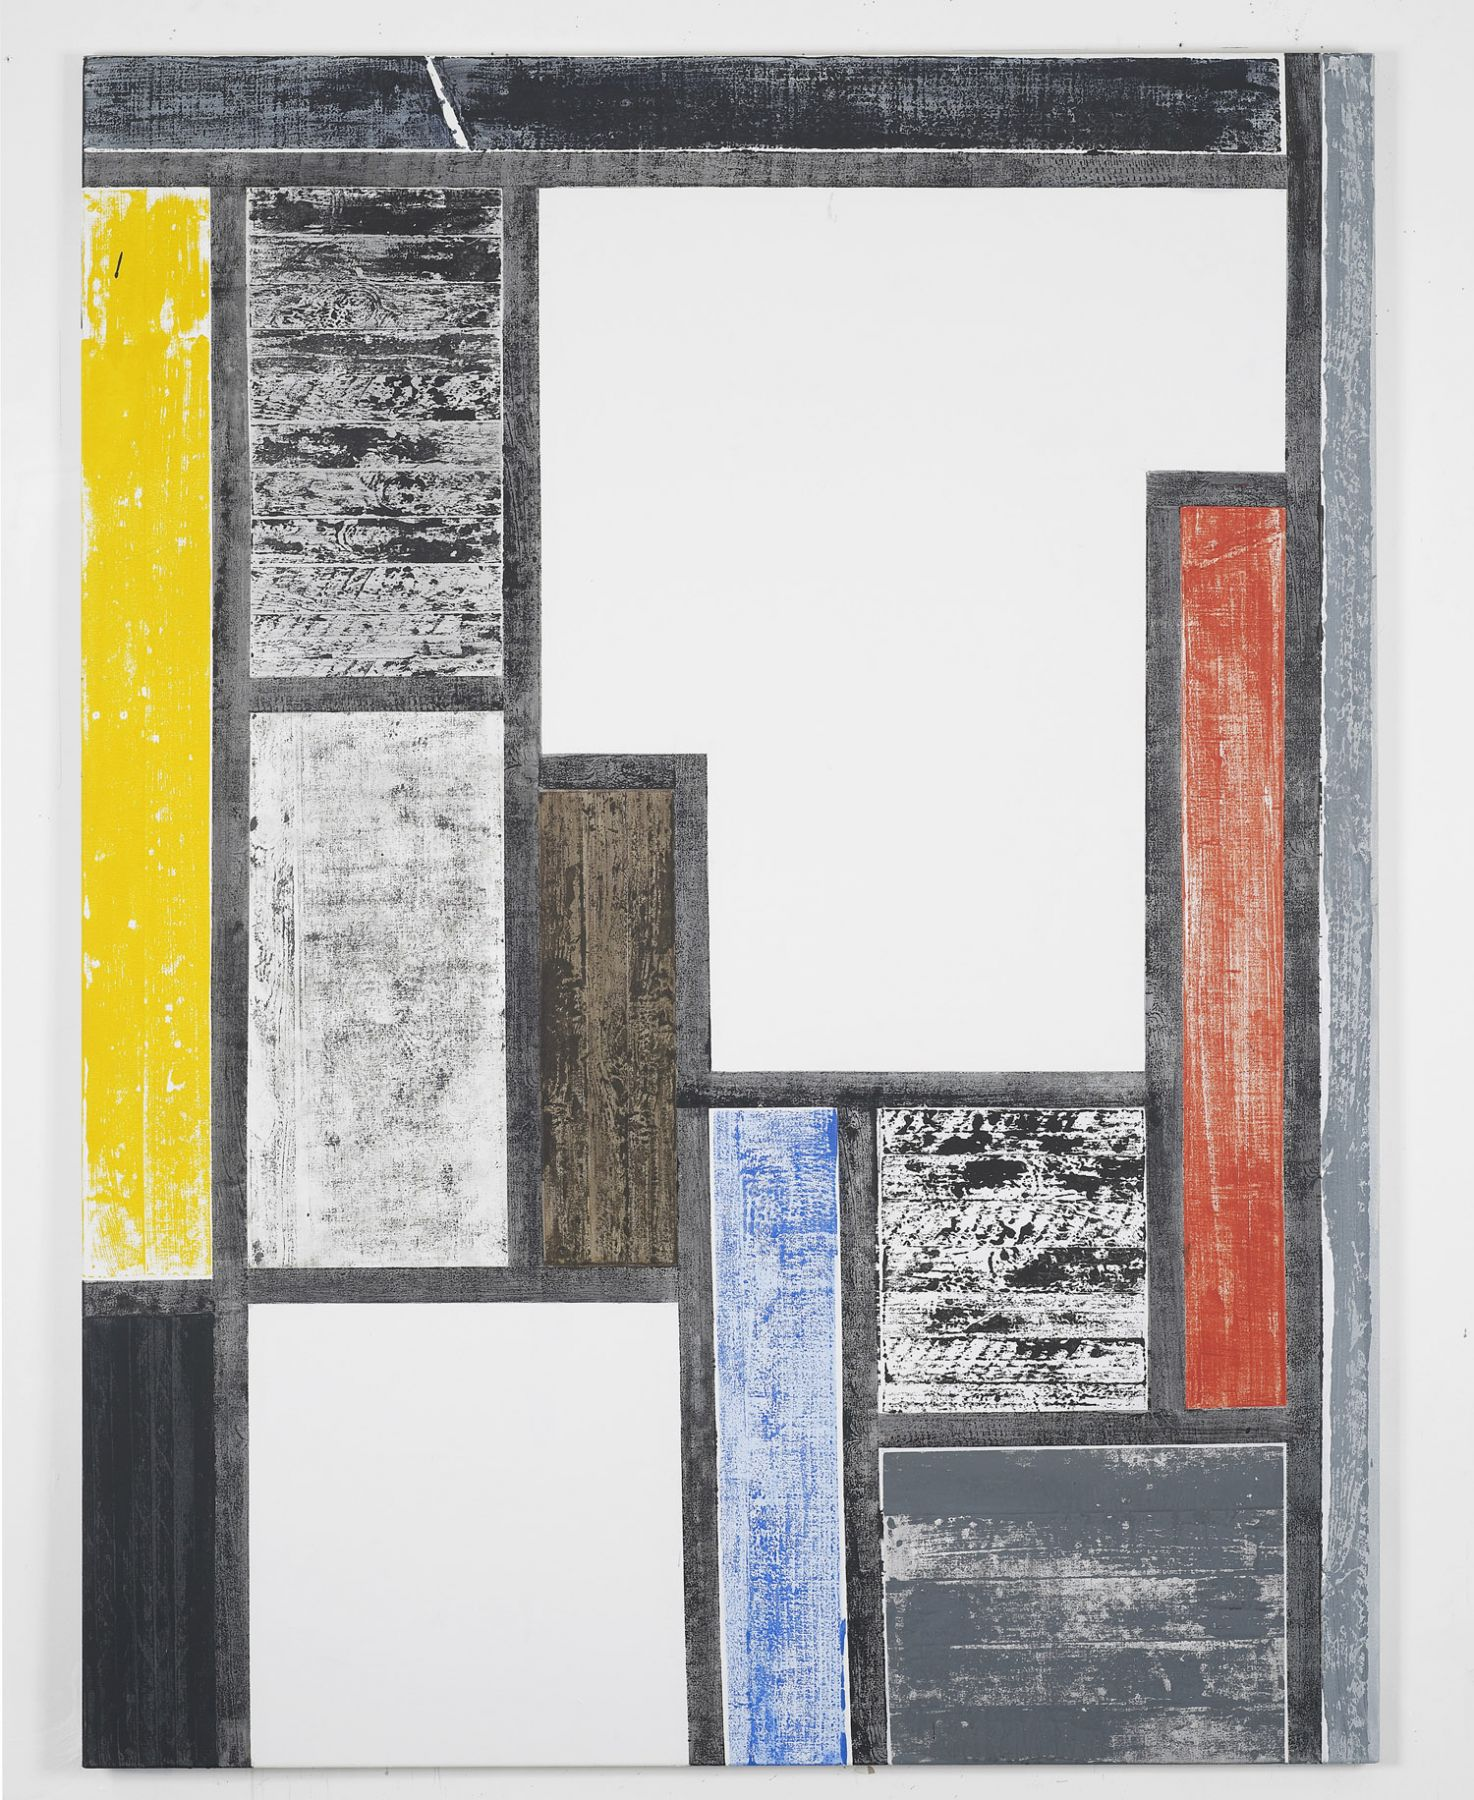 painting by melissa gordon with black, blue, red, yellow, and white rectangles